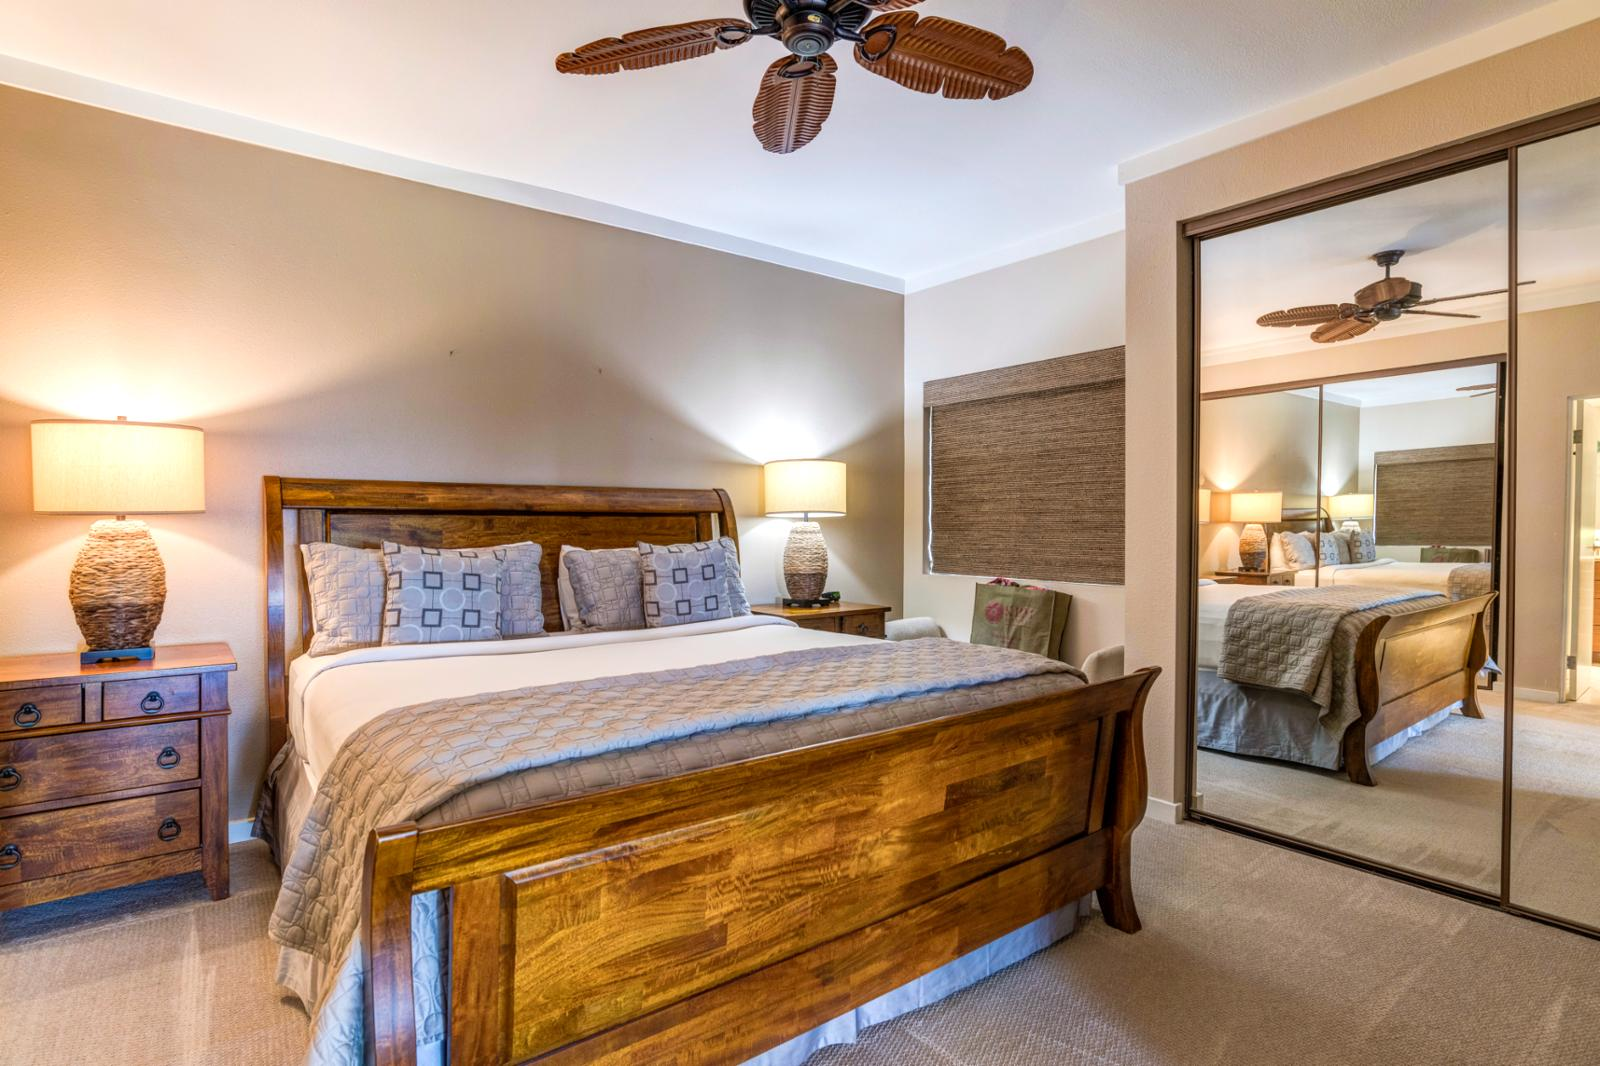 Comfortable King bed equipped with ceiling fan and private entry with stunning decor